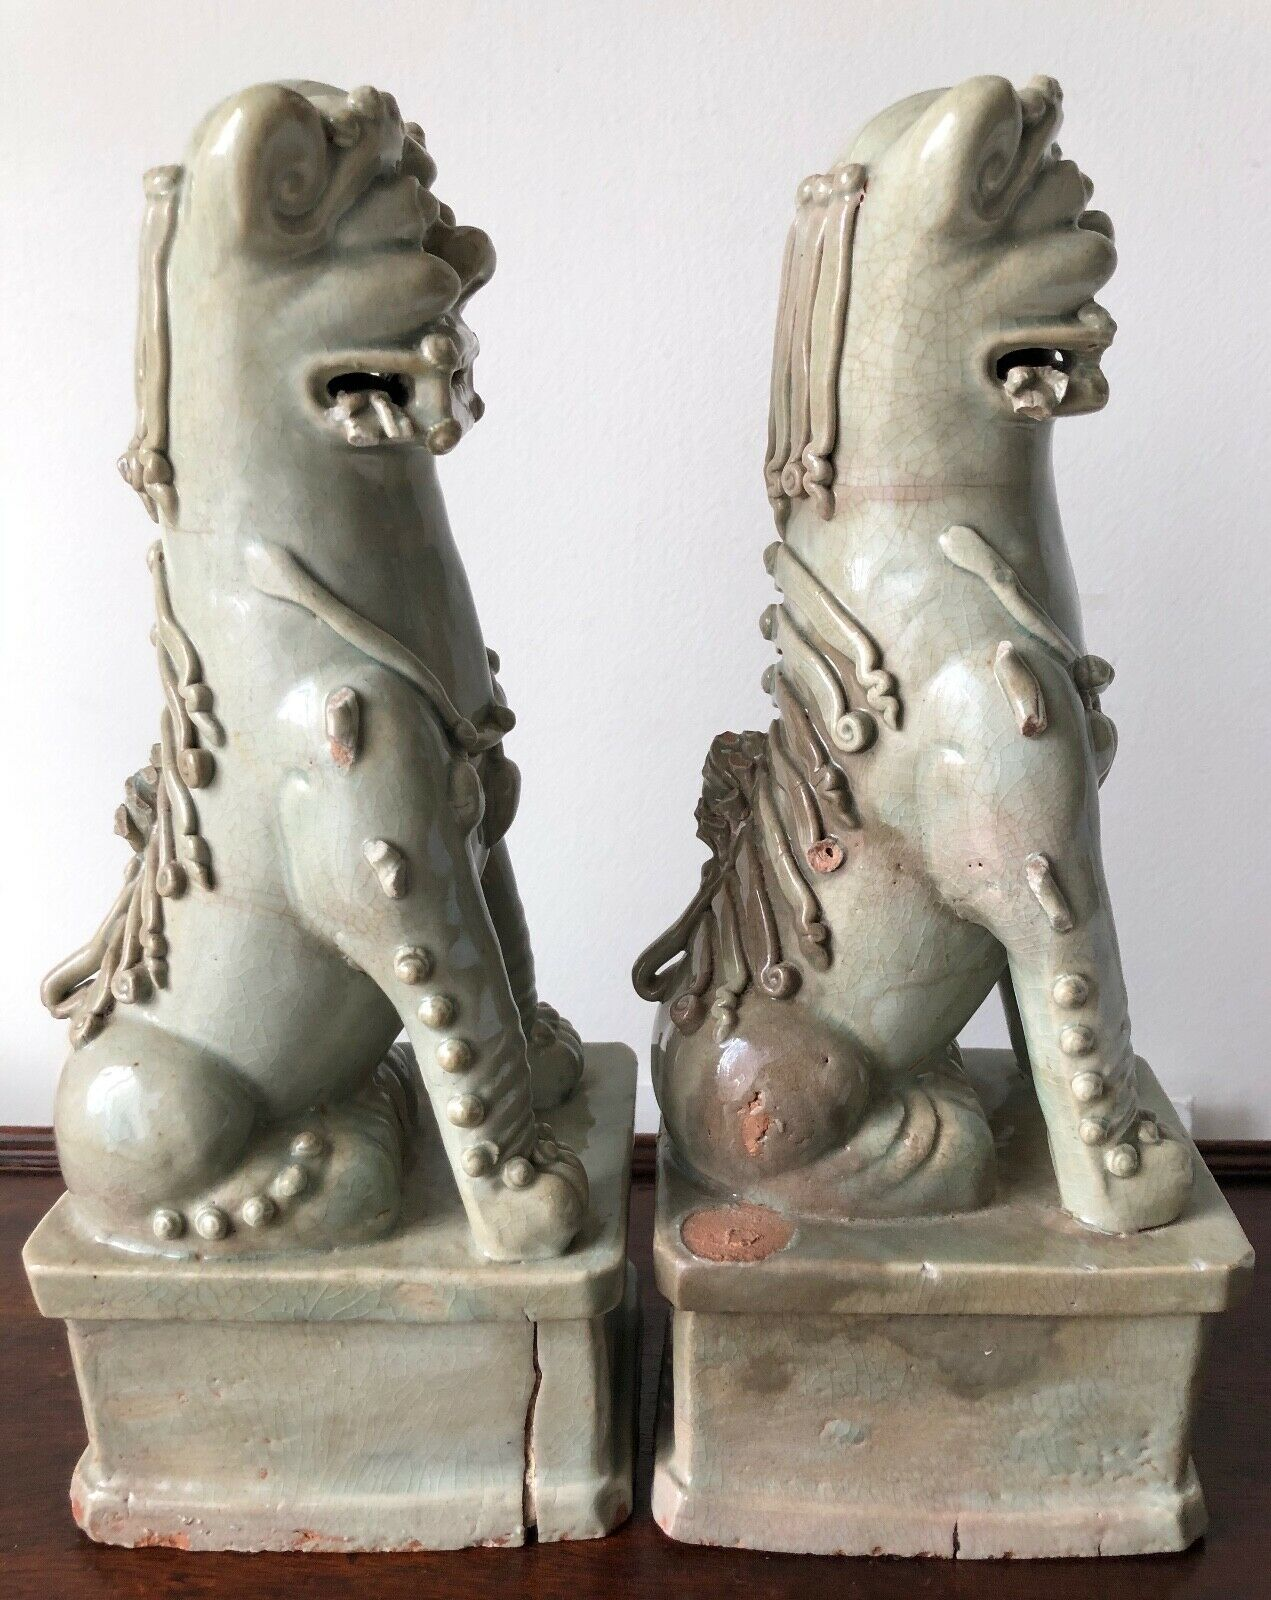 "ANTIQUE CELADON GLAZED TERRA COTTA 12"" FOO LIONS/DOGS-A PAIR Без бренда - фотография #4"